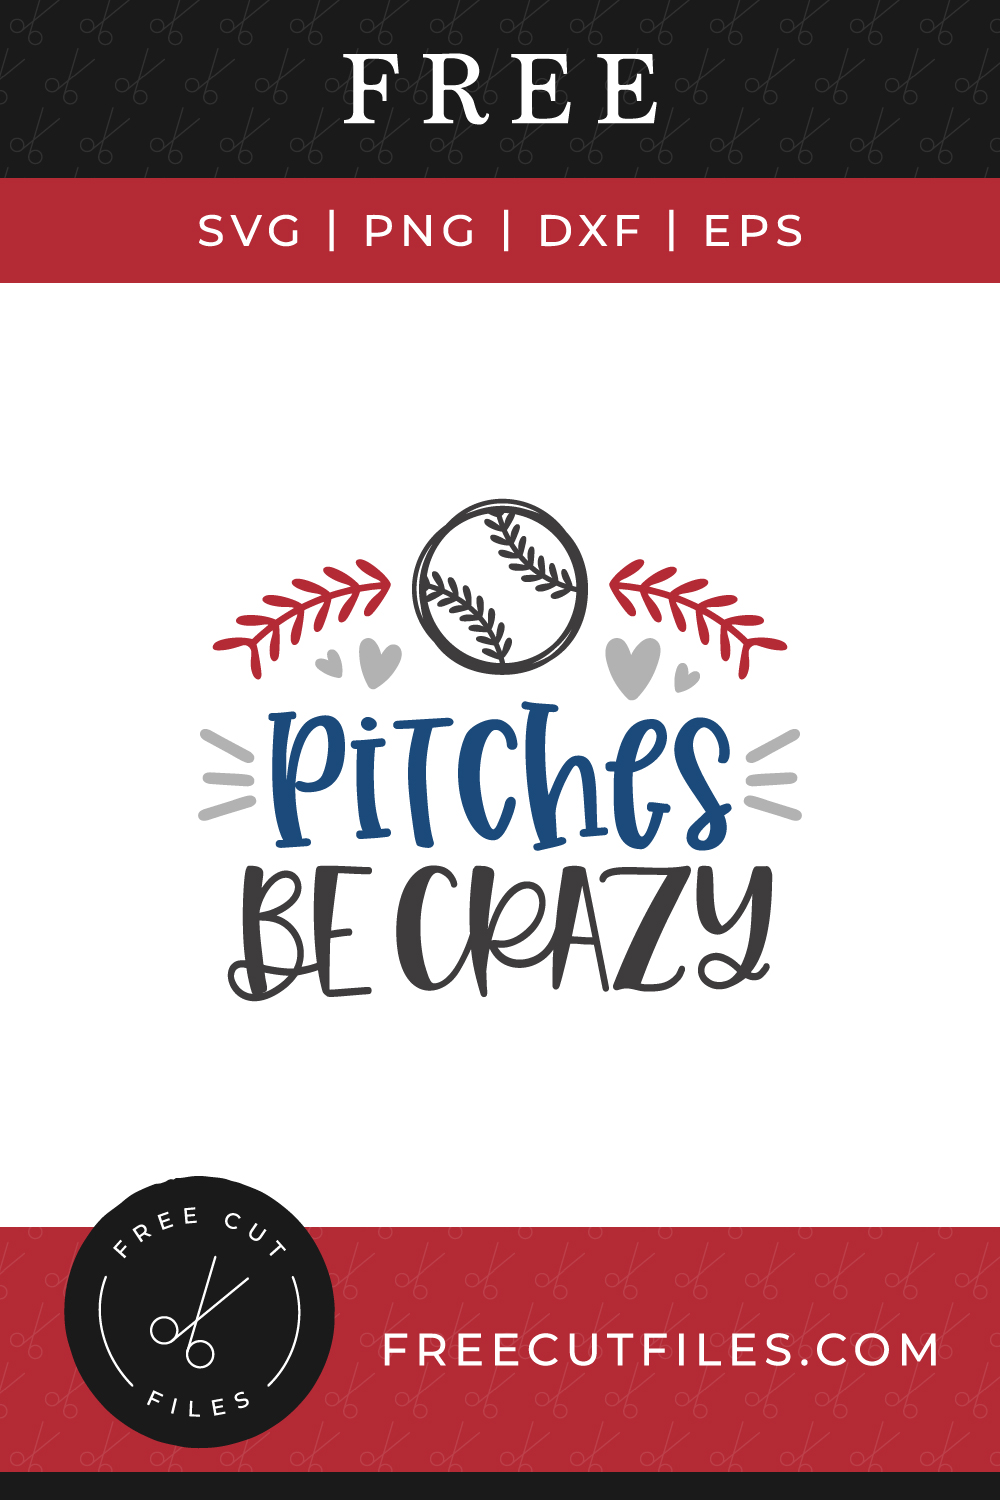 Free Pitches be crazy SVG